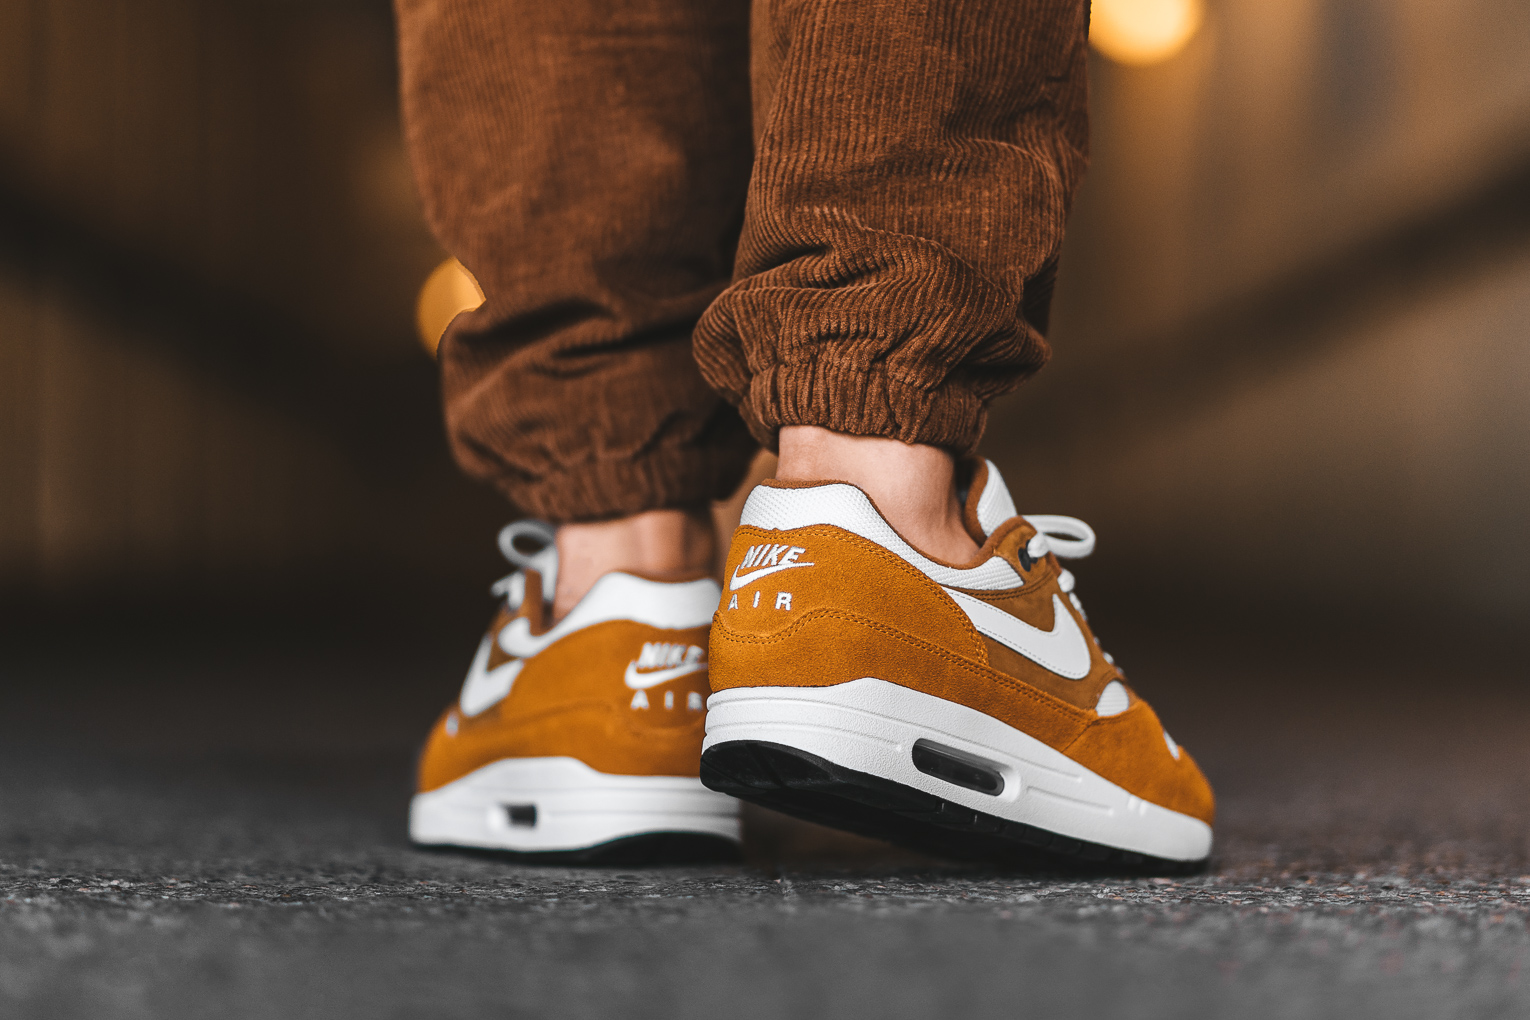 new appearance new specials crazy price On-Feet: atmos x Nike Air Max 1 Curry • KicksOnFire.com